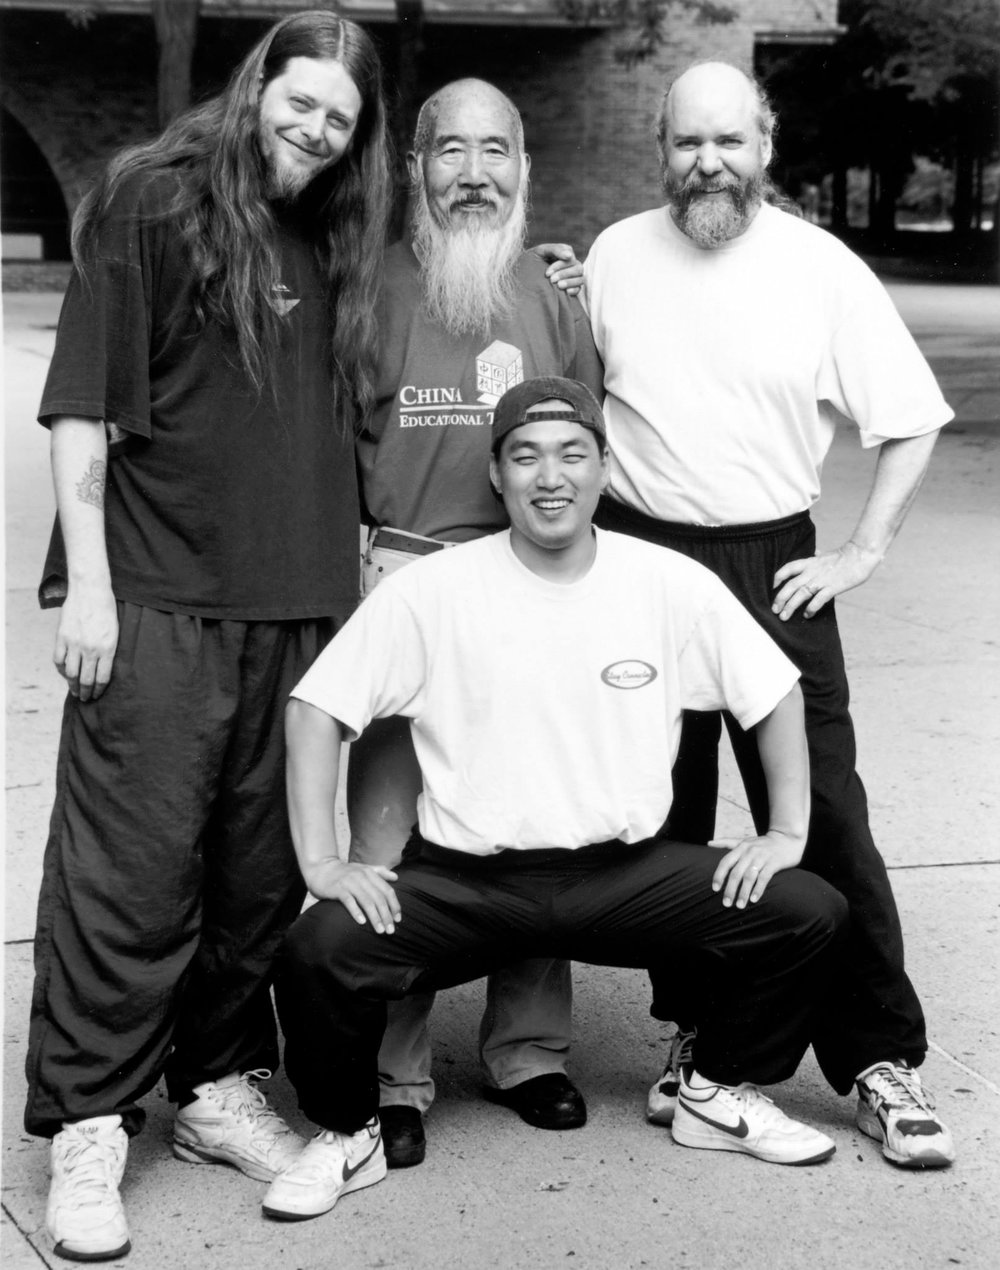 Master Gabriel Chin, with Master Kim, Grandfather Jefff Noftz (lineage elder) and another student of Master Chin